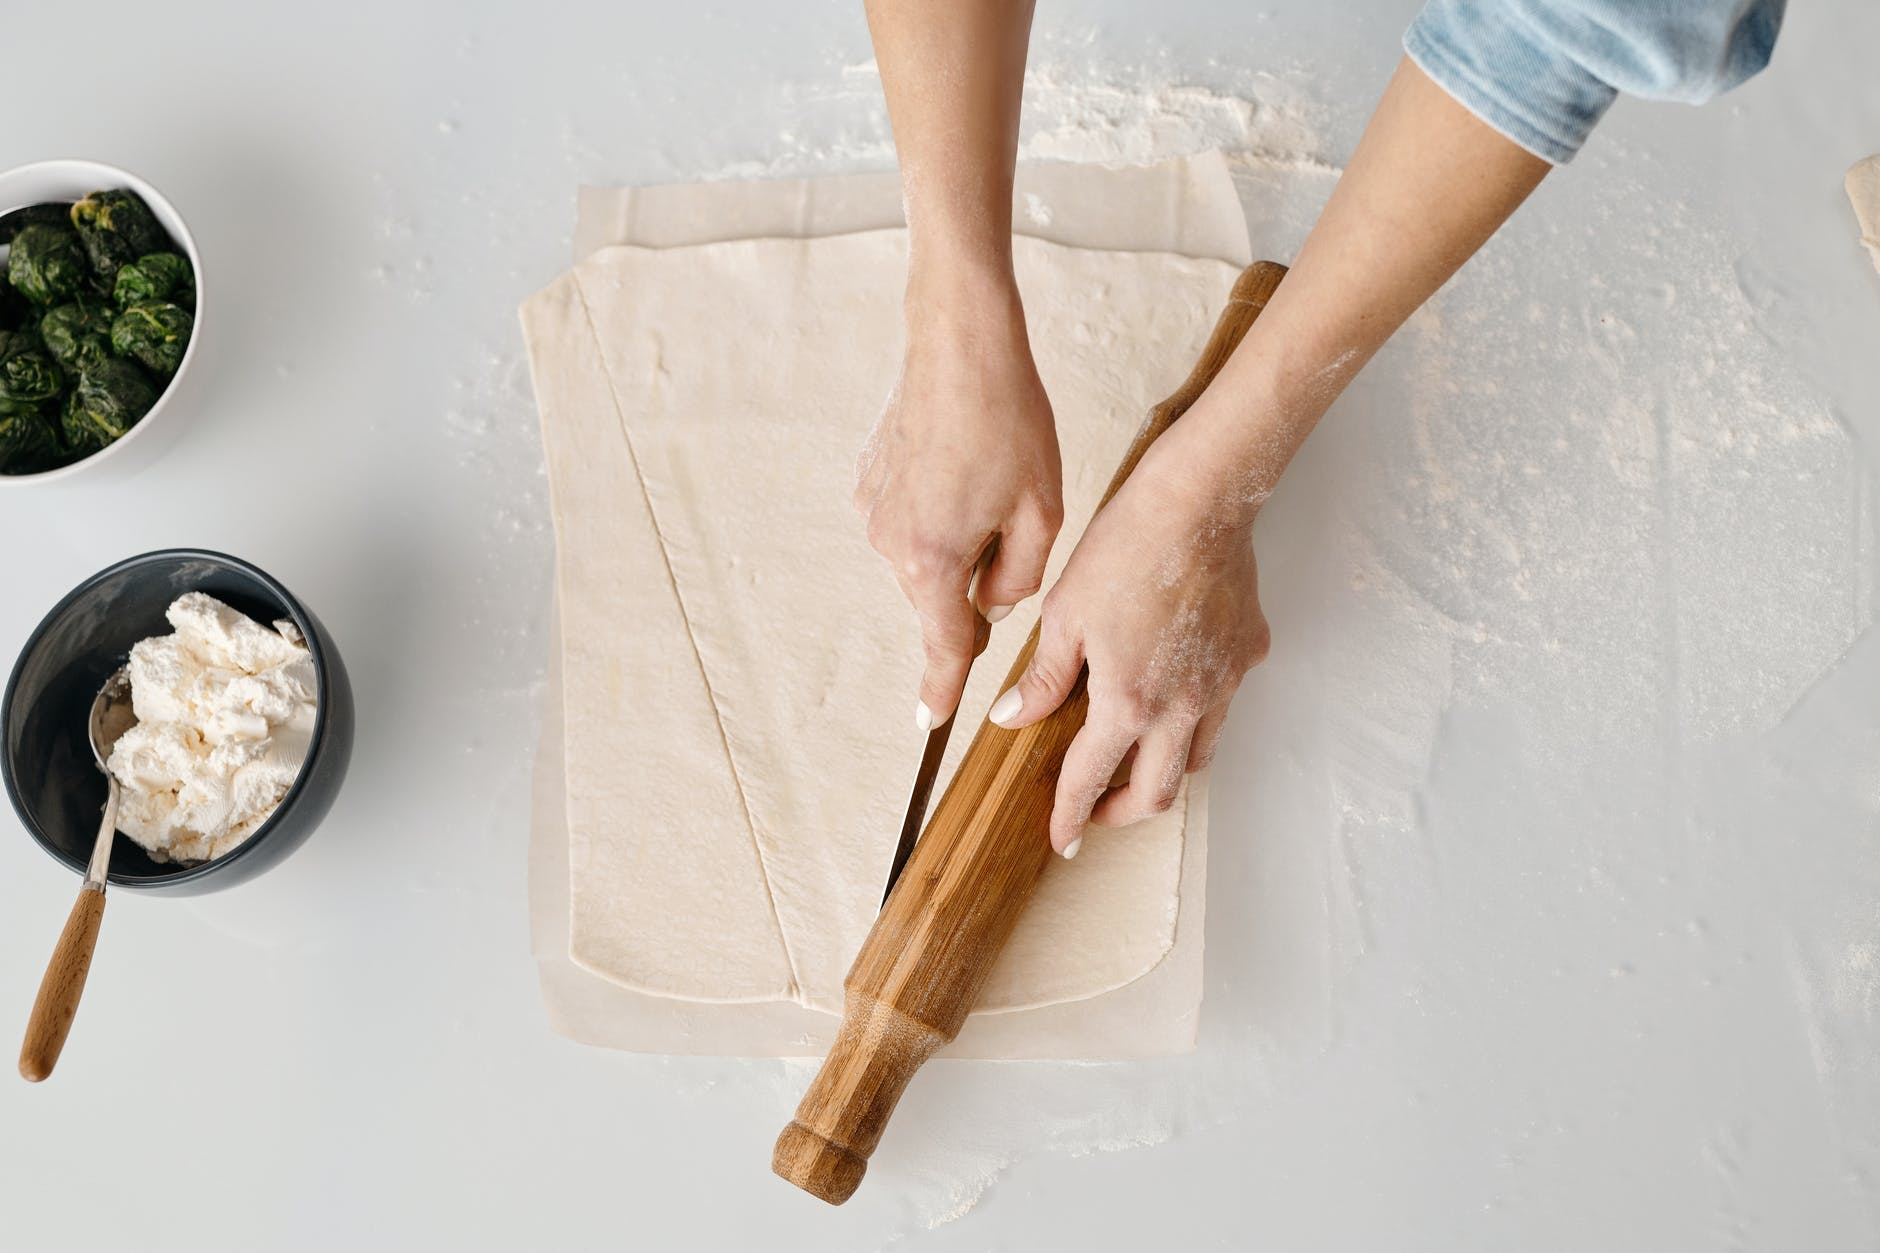 A woman cuts pastry and rolls it with a rolling pin.